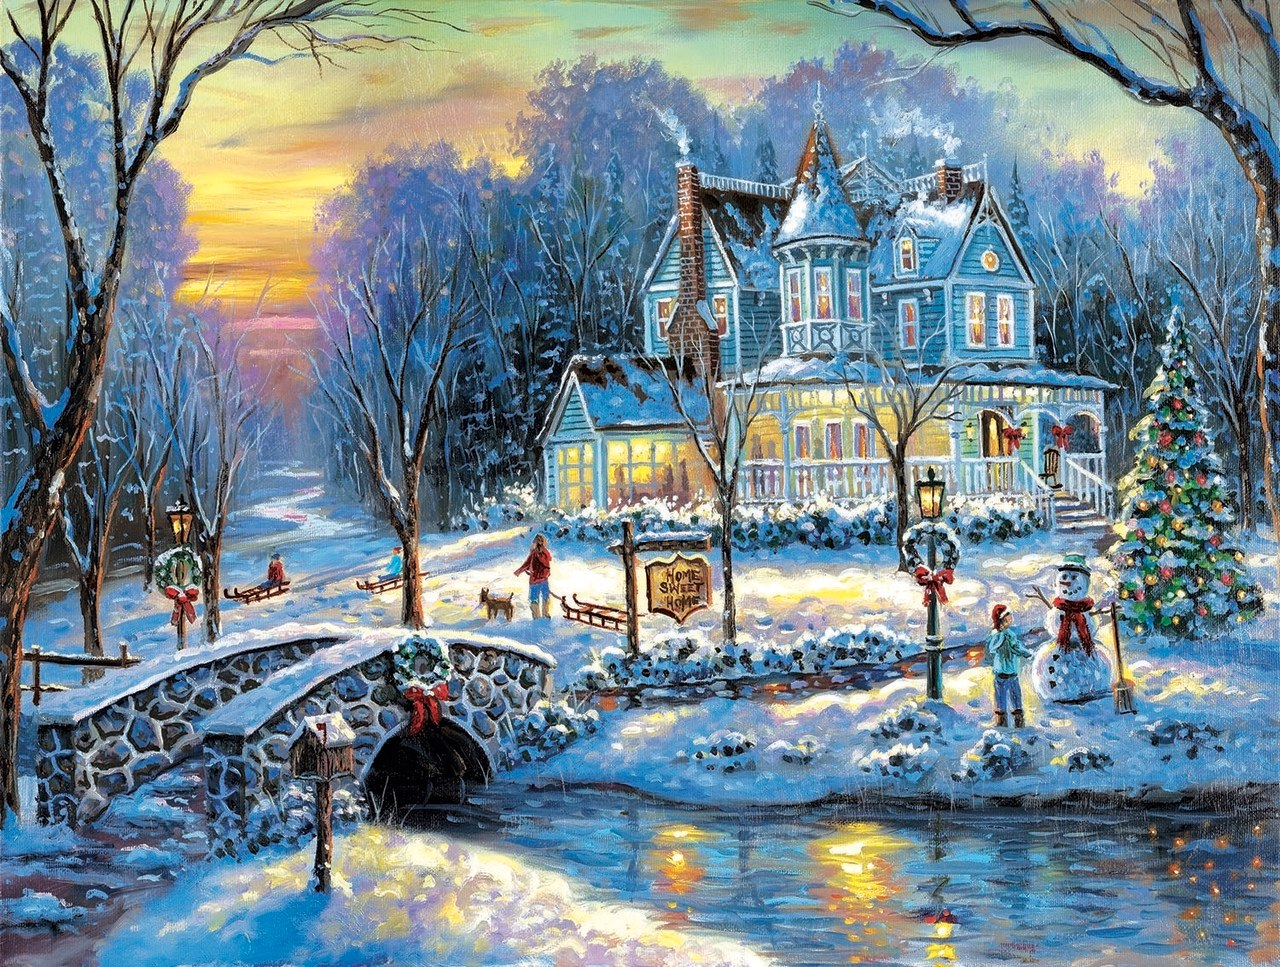 A White Christmas - 1000pc Jigsaw Puzzle by Sunsout  			  					NEW